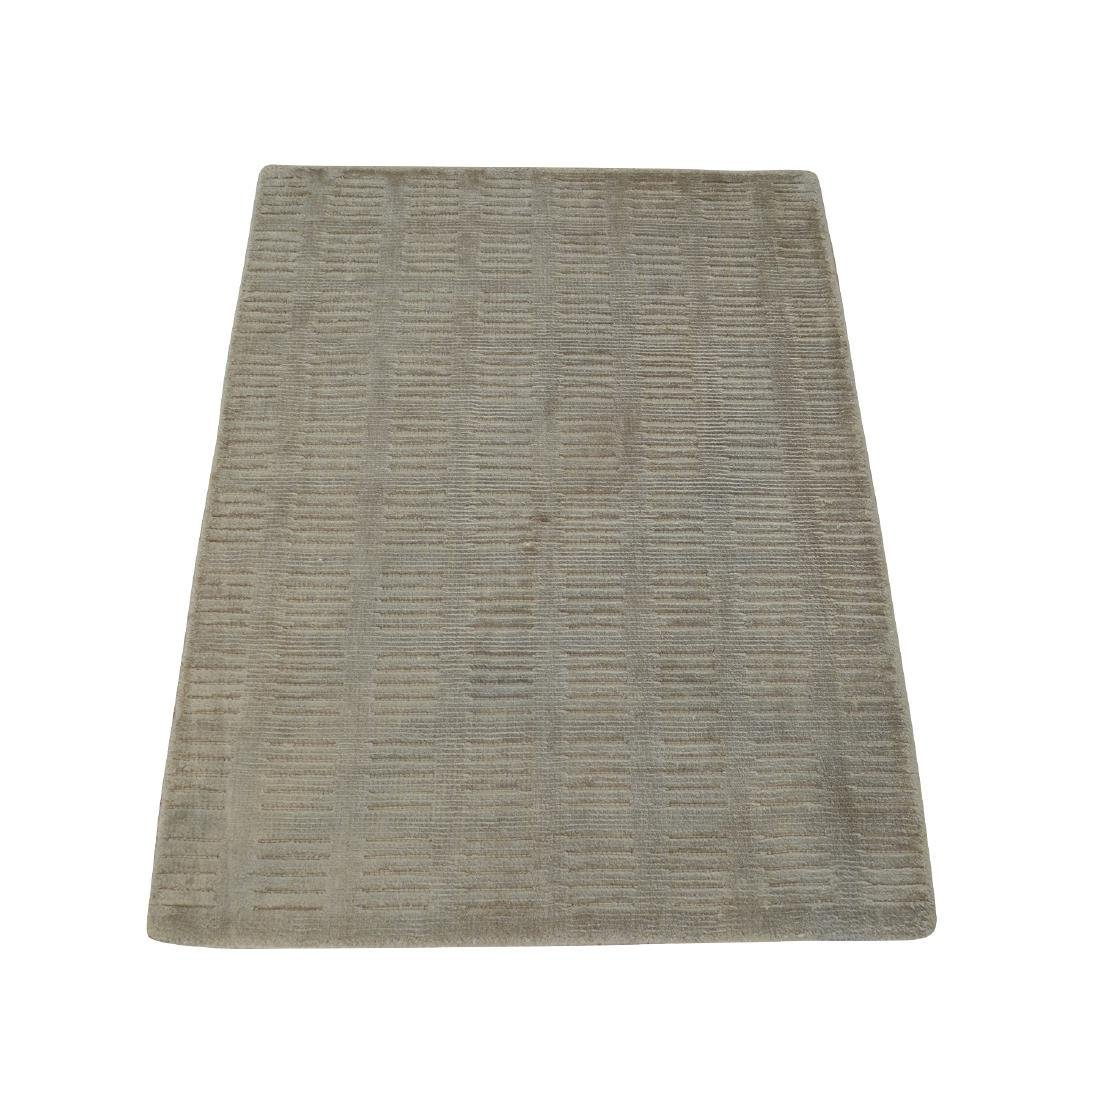 Hand Loomed Art Silk Rug Tone on Tone Beige Modern 2x3